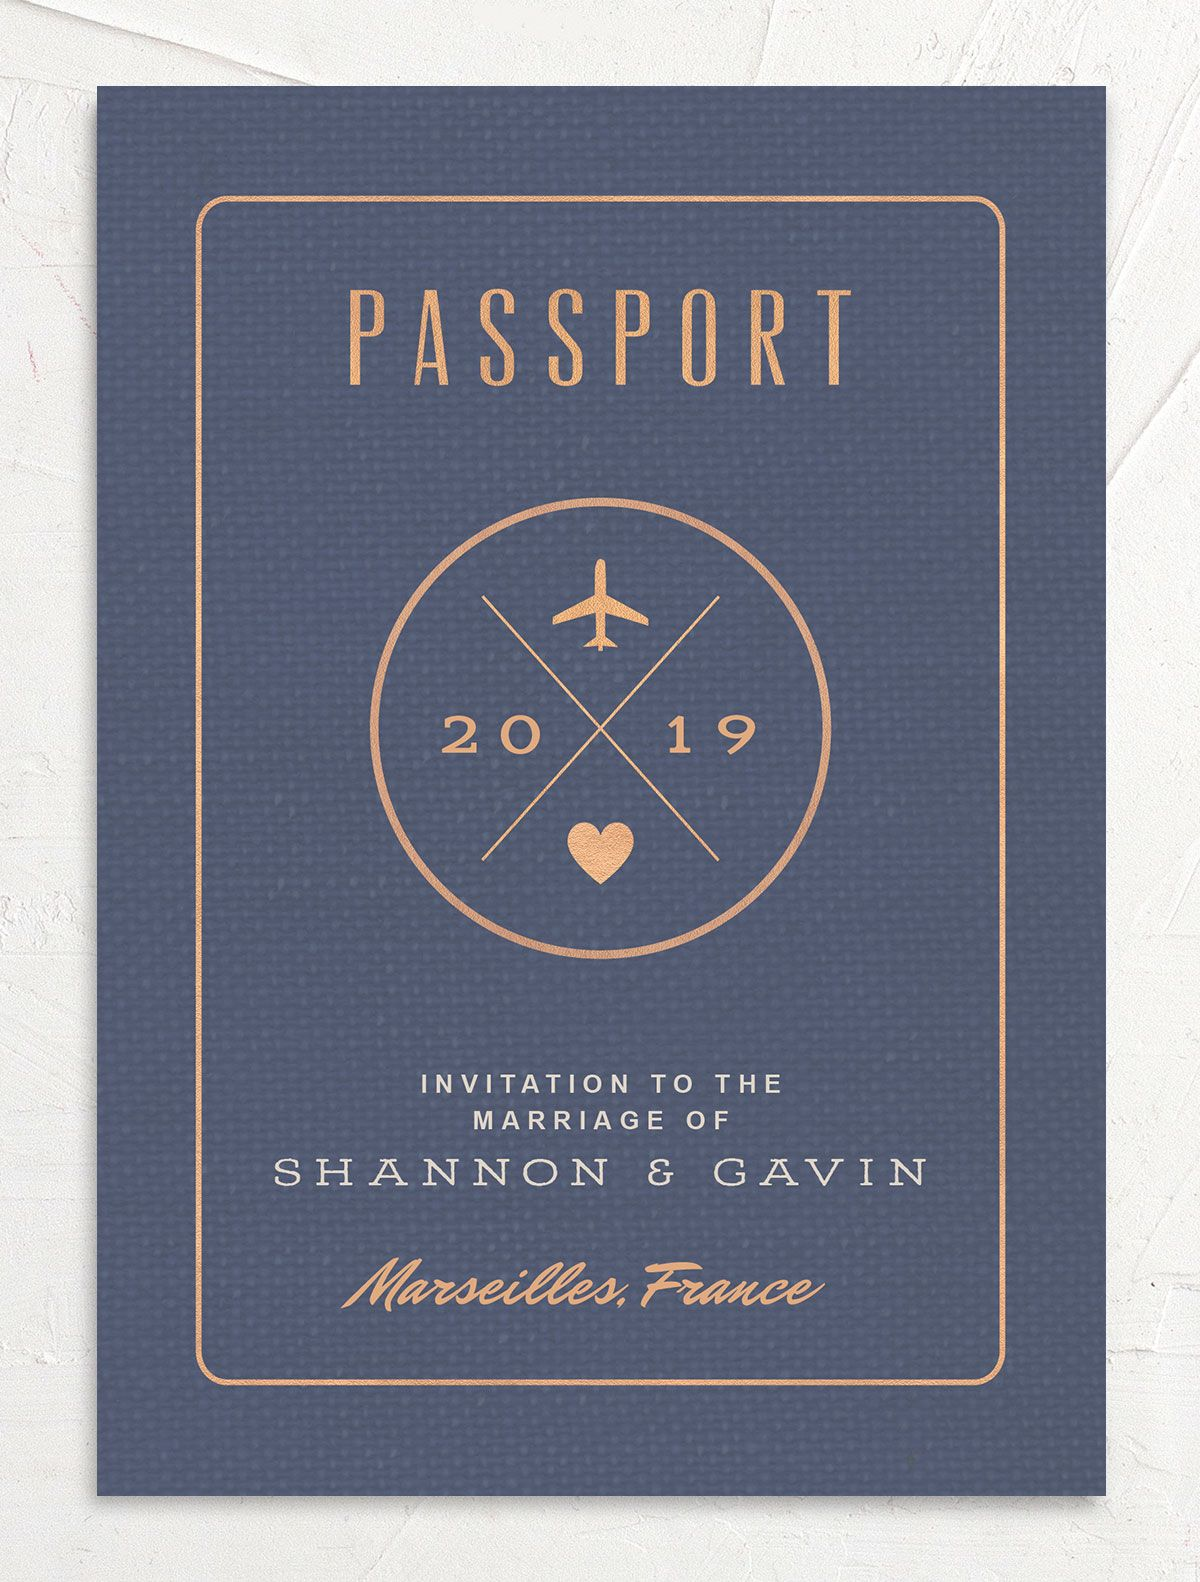 01 win passport 01